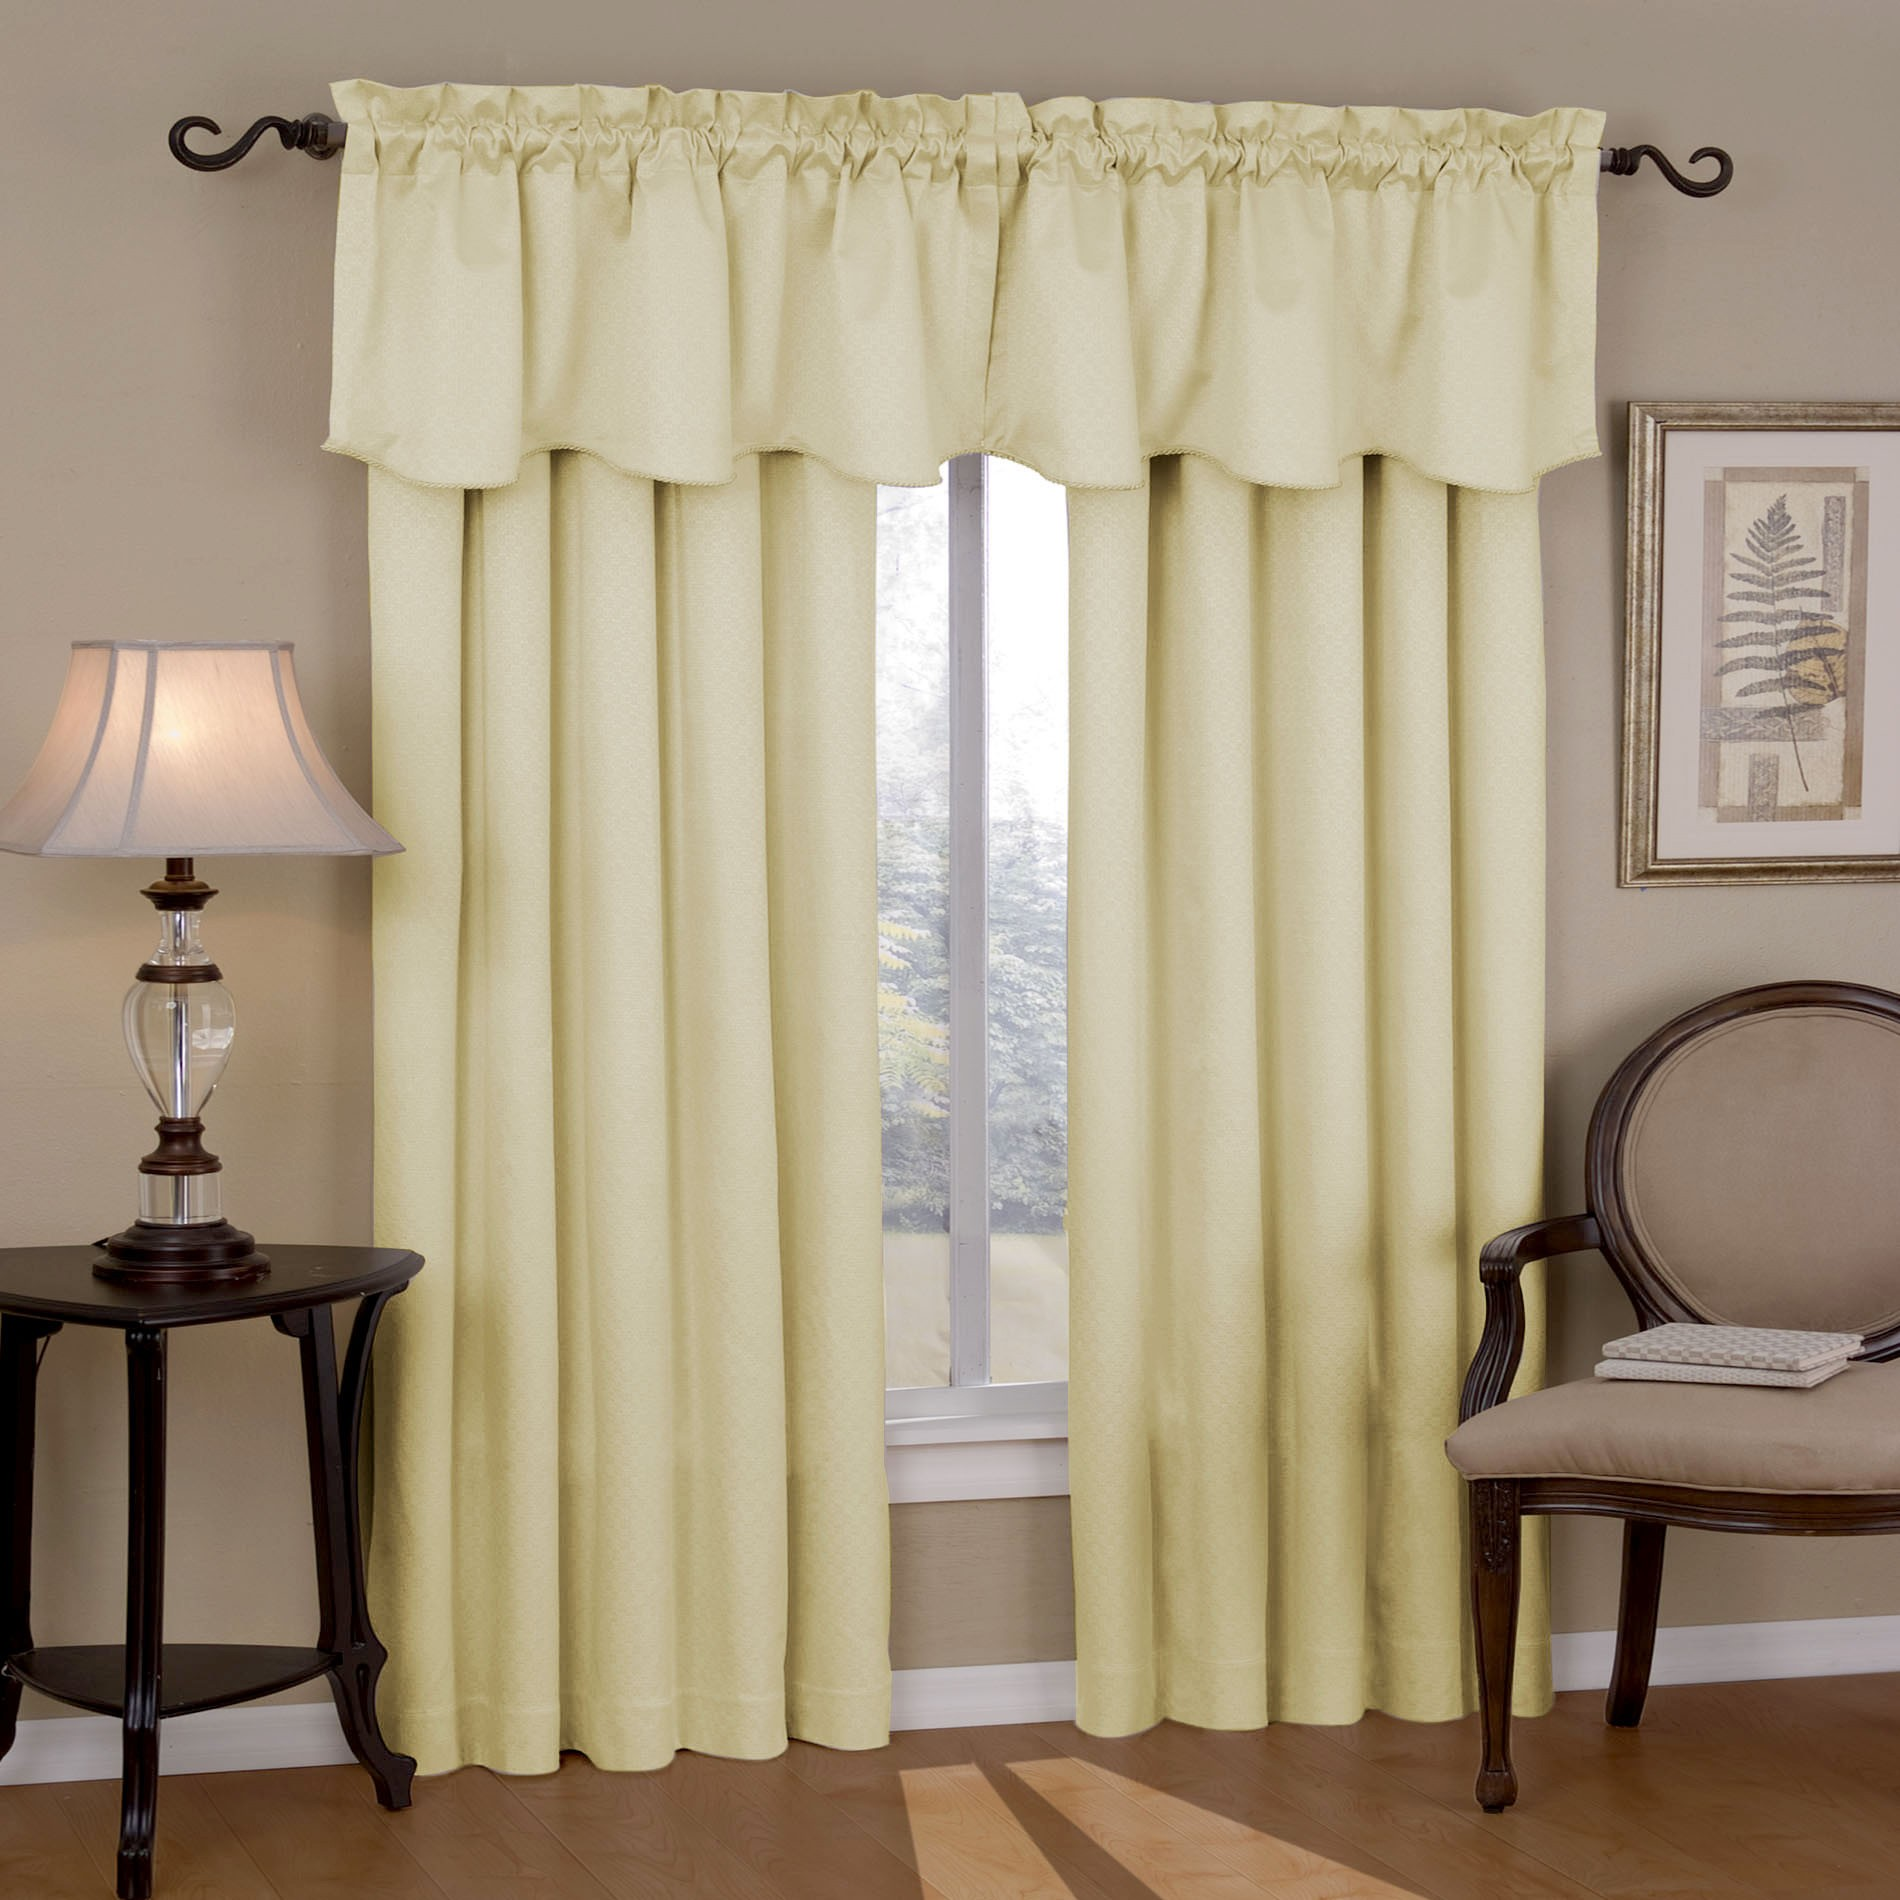 Window Treatment With Sophisticated Soft Sound Reducing Curtains With  Window Valances Plus Wooden End Table In